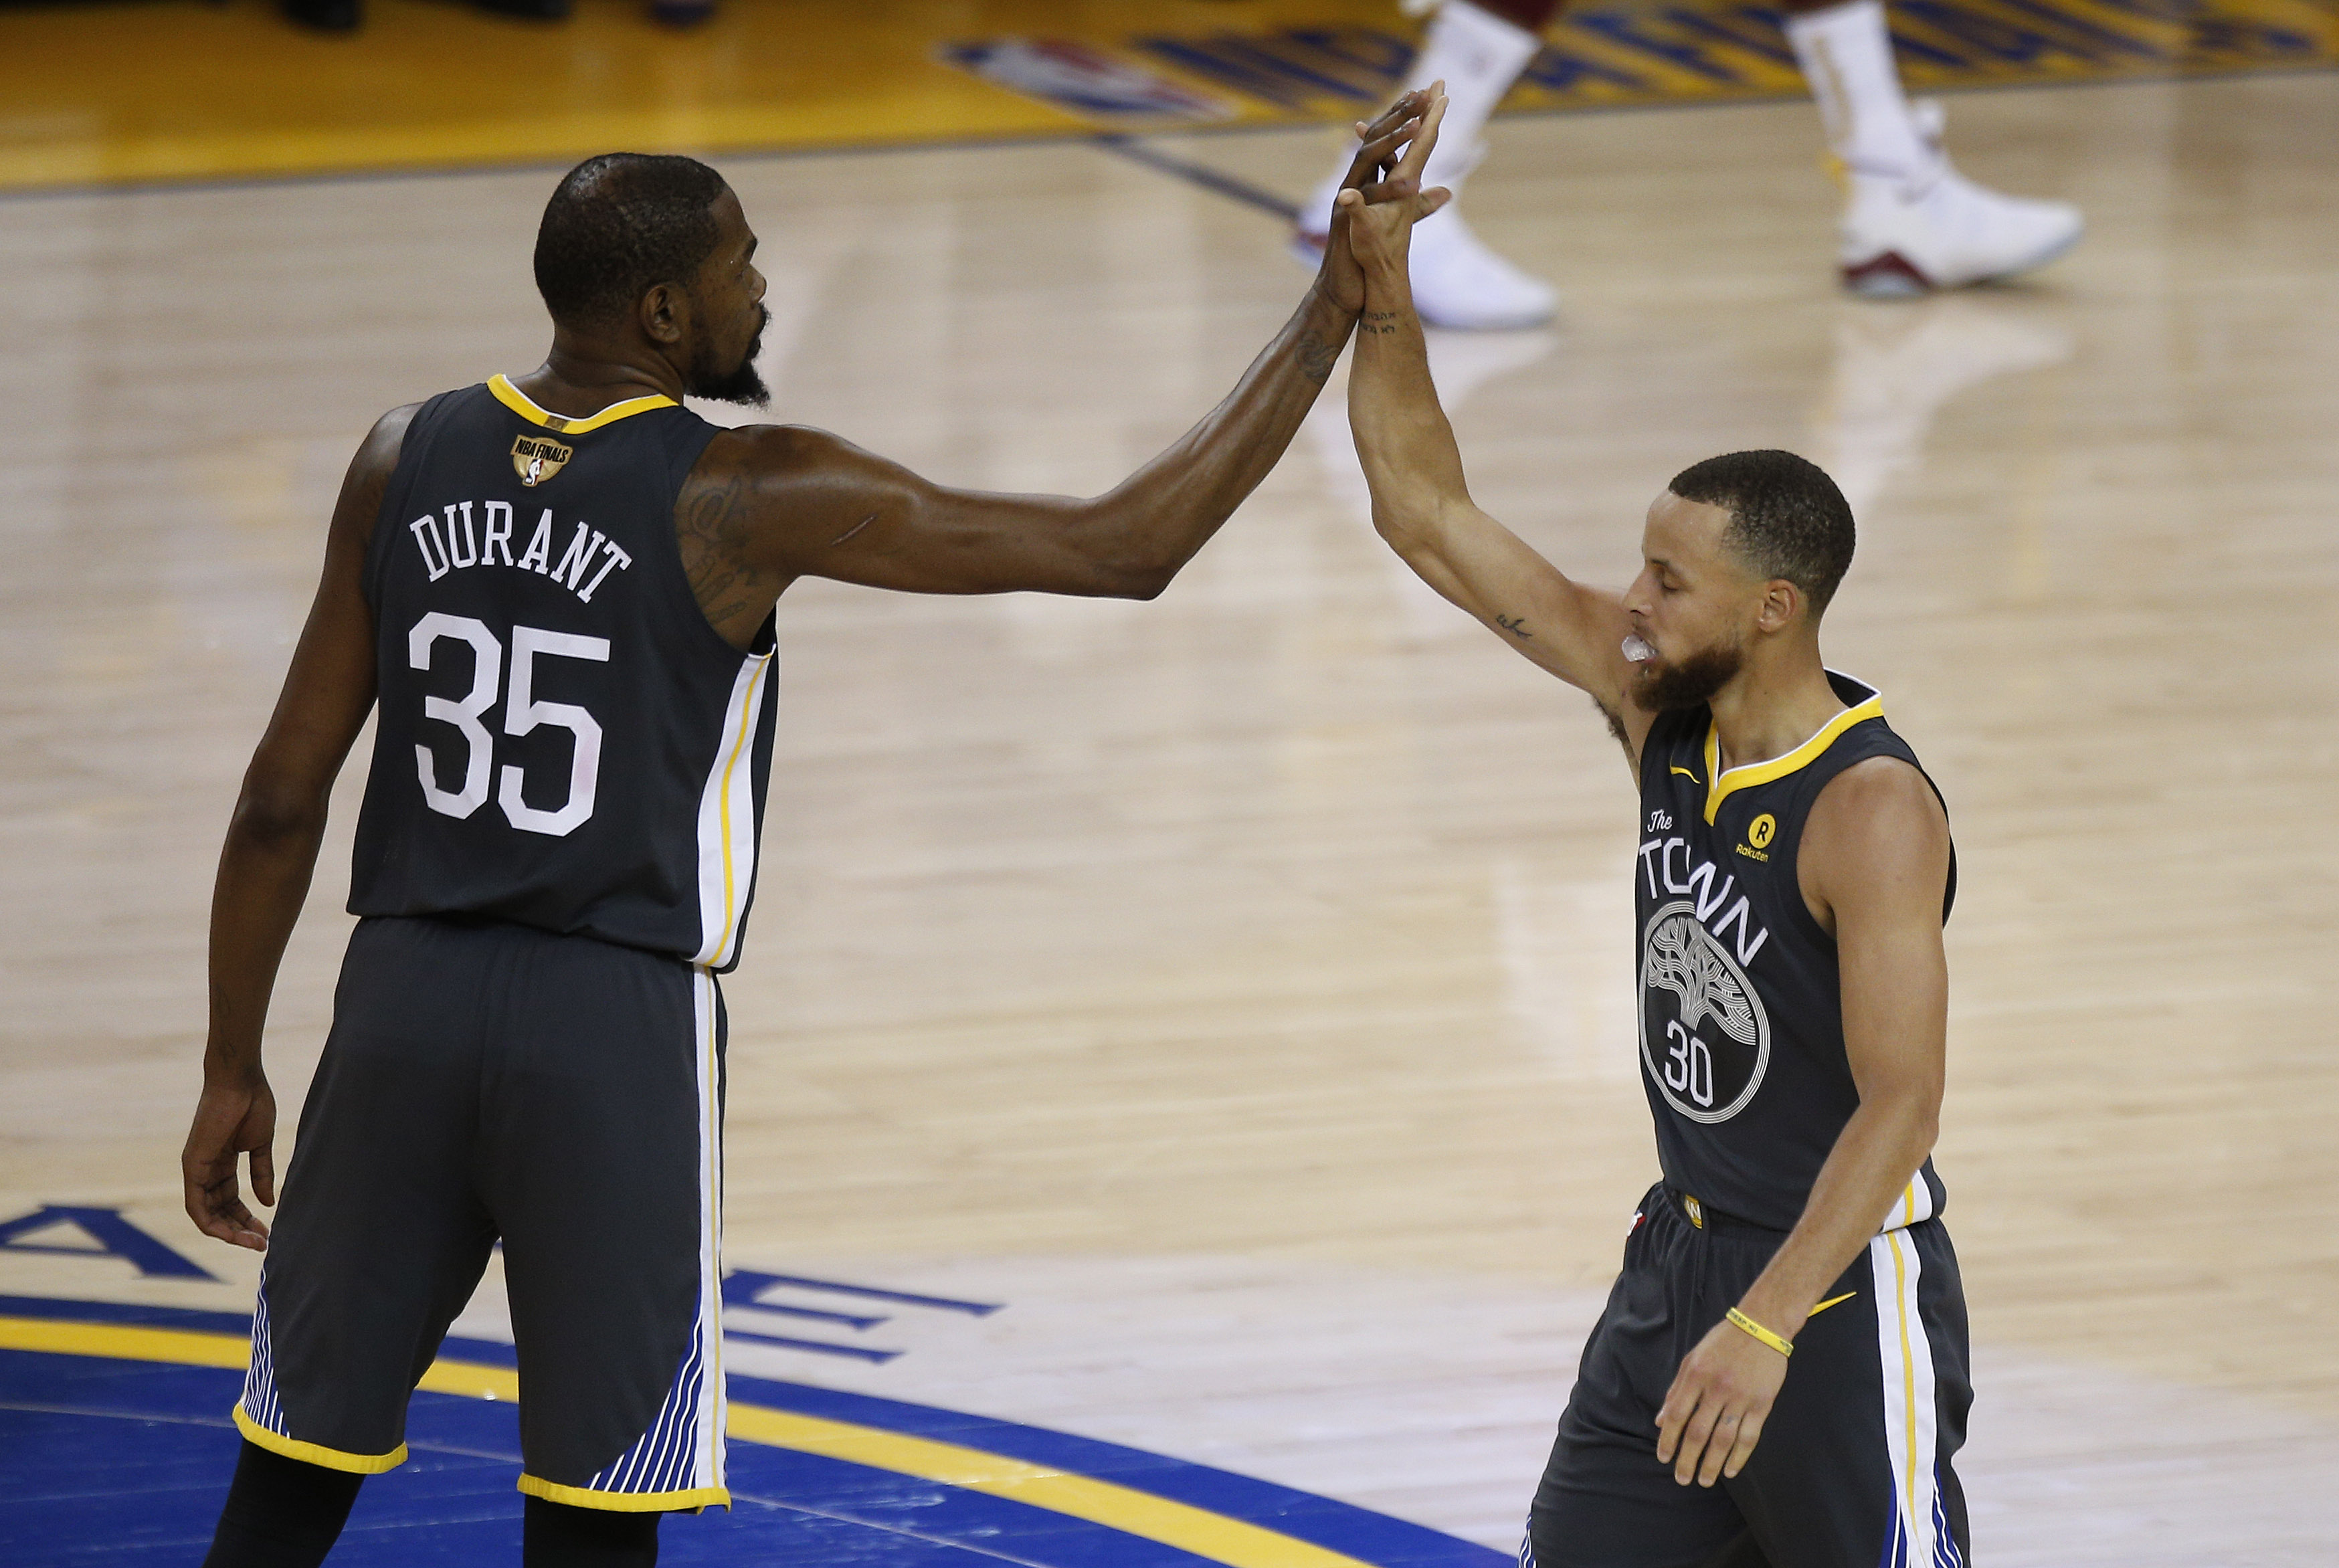 Jun 3, 2018; Oakland, CA, USA; Golden State Warriors guard Stephen Curry (30) reacts with forward Kevin Durant (35) after scoring a basket against the Cleveland Cavaliers during the first half in game two of the 2018 NBA Finals at Oracle Arena. Mandatory Credit: Cary Edmondson-USA TODAY Sports